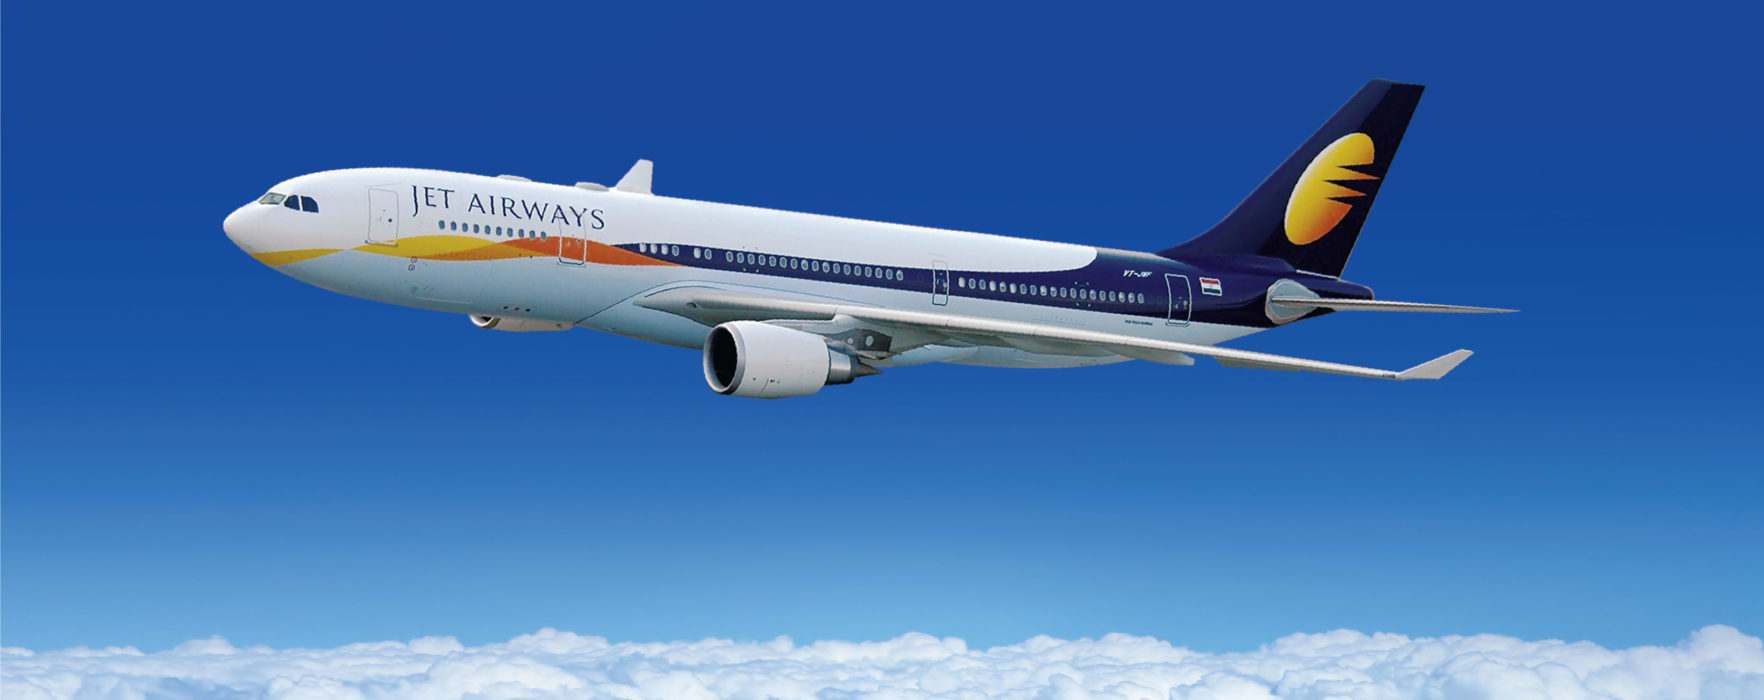 Jet Airways increases frequency on Mumbai flights ahead of its launch at Manchester Airport